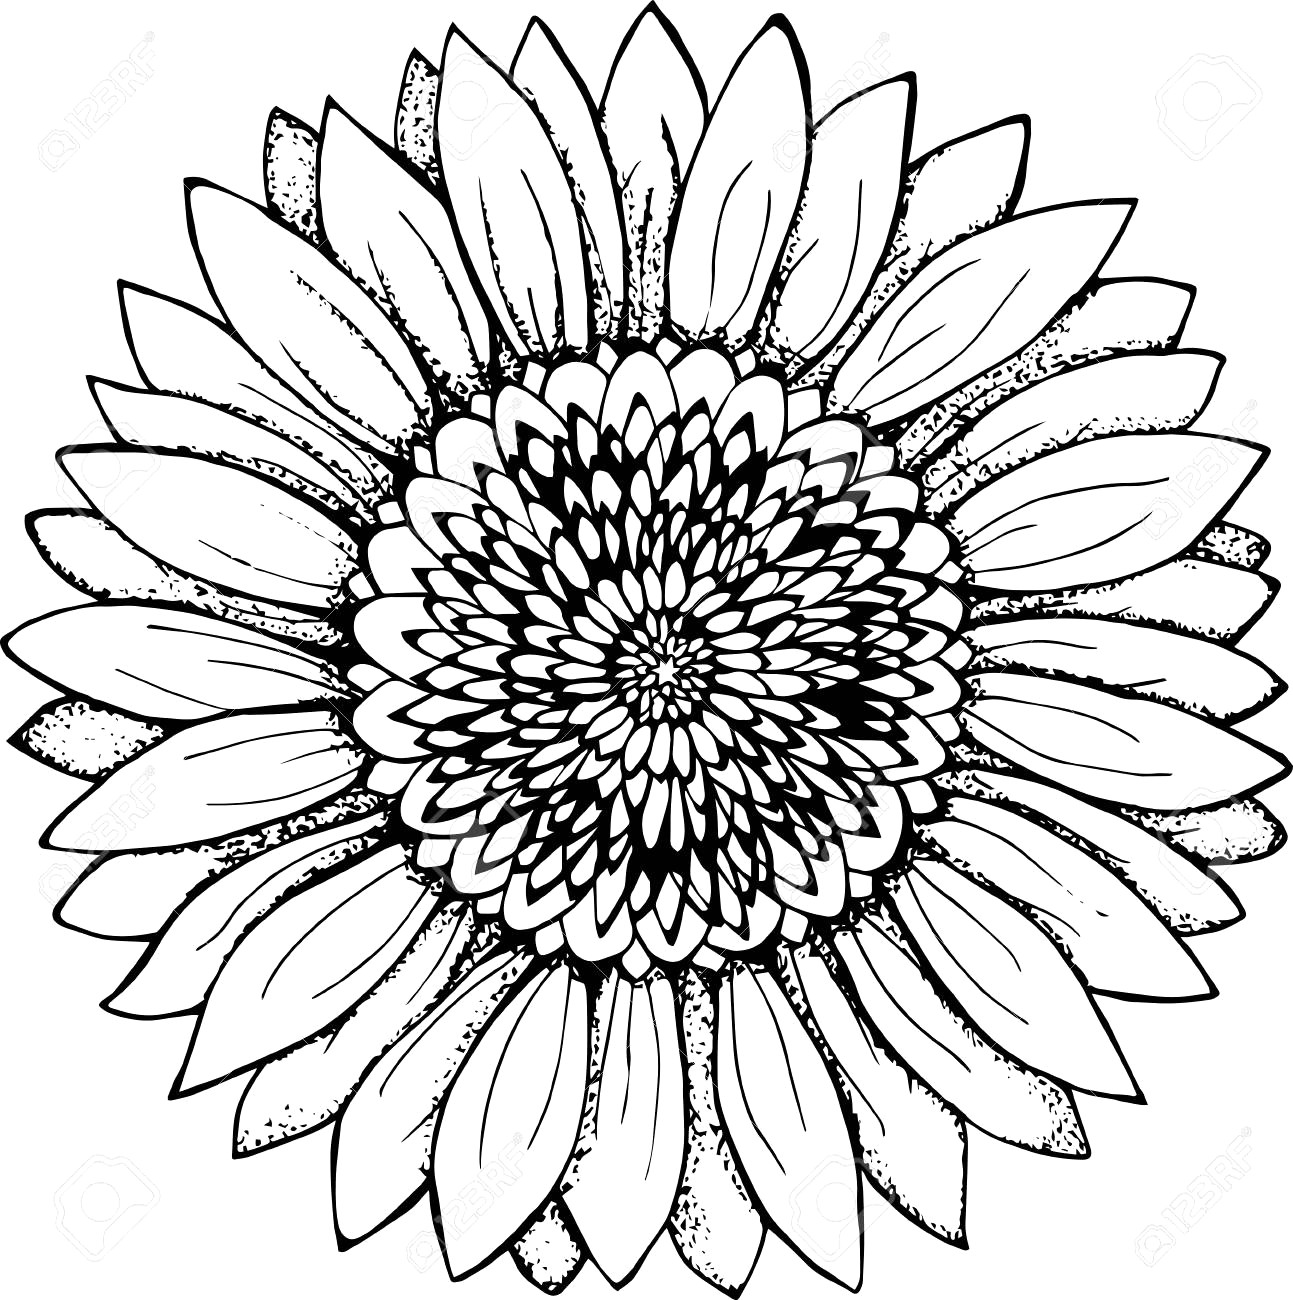 sunflower coloring page picture of sunflower coloring pages gtgt disney coloring pages page coloring sunflower